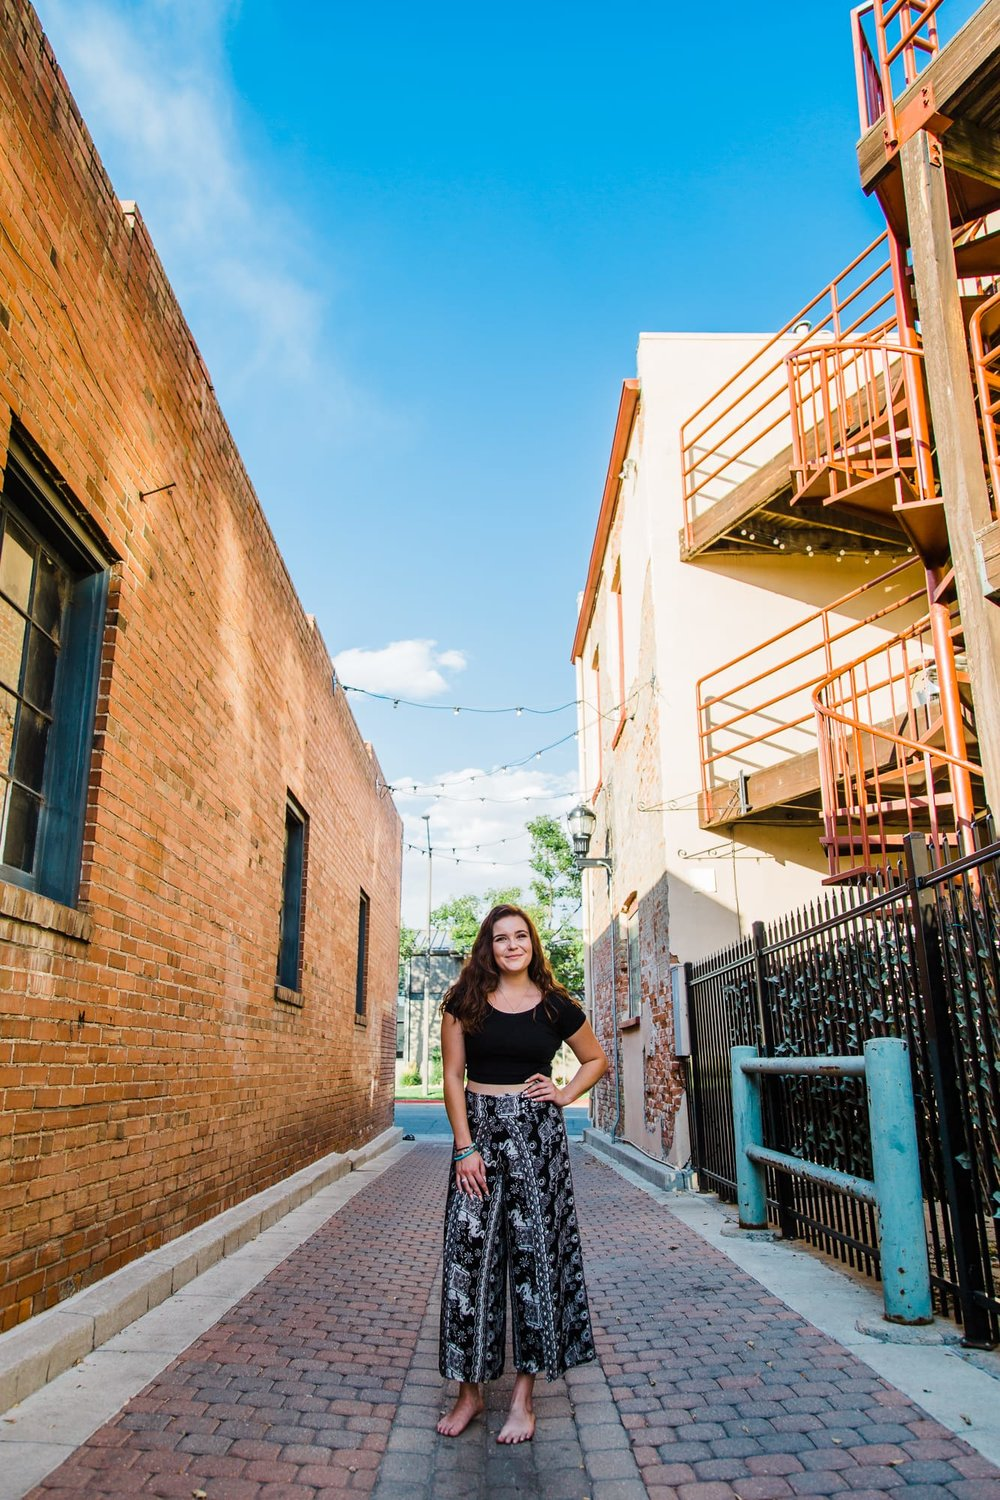 Wide portrait of a young woman standing in an alley with her hand on her hip.